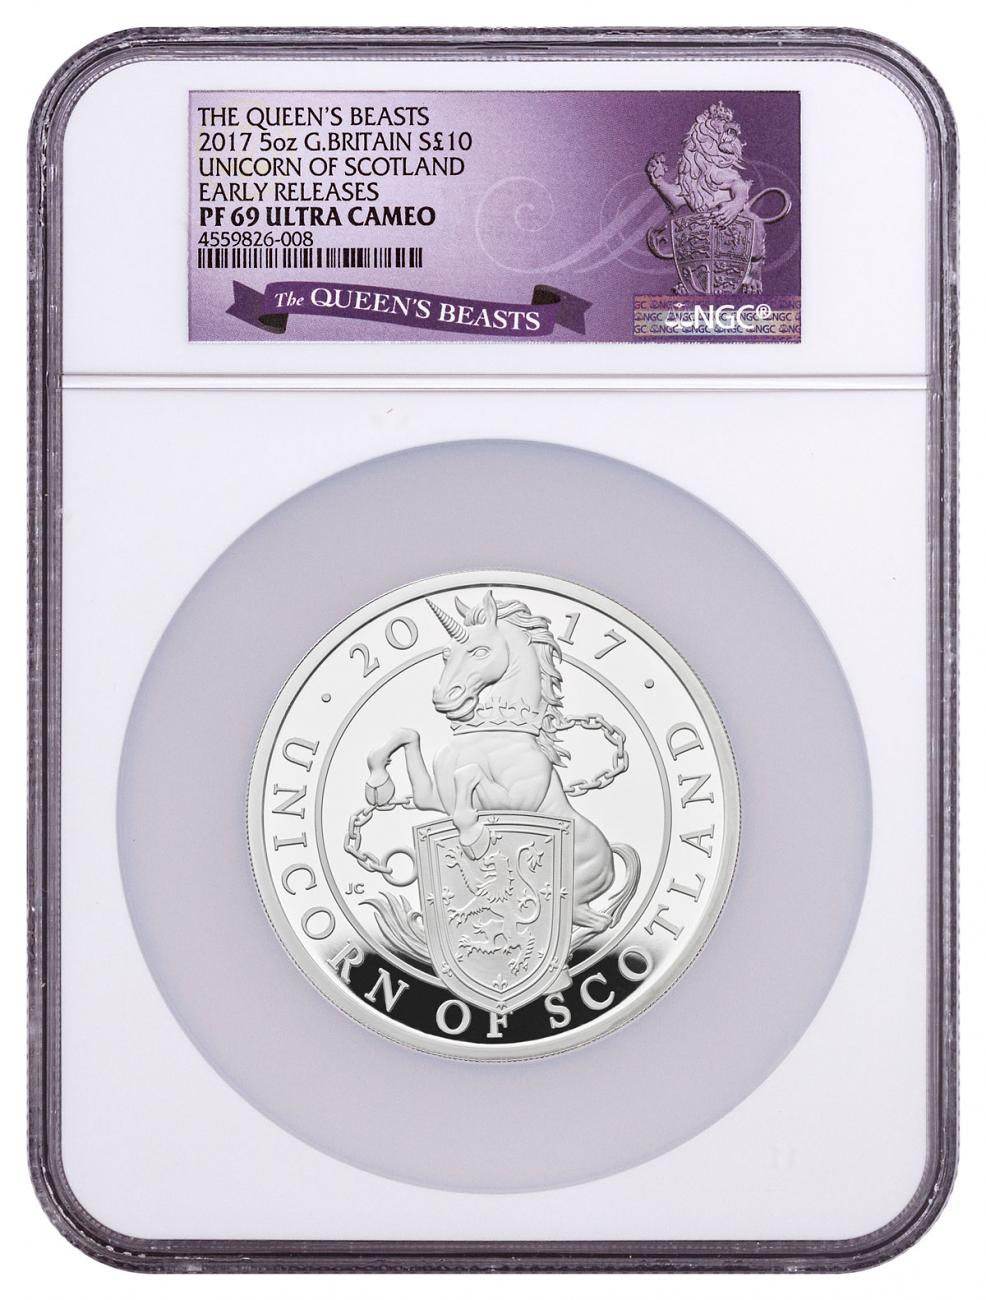 2017 Great Britain 5 oz Silver Queen's Beasts - Unicorn of Scotland Proof £10 Coin NGC PF69 UC ER Exclusive Queen